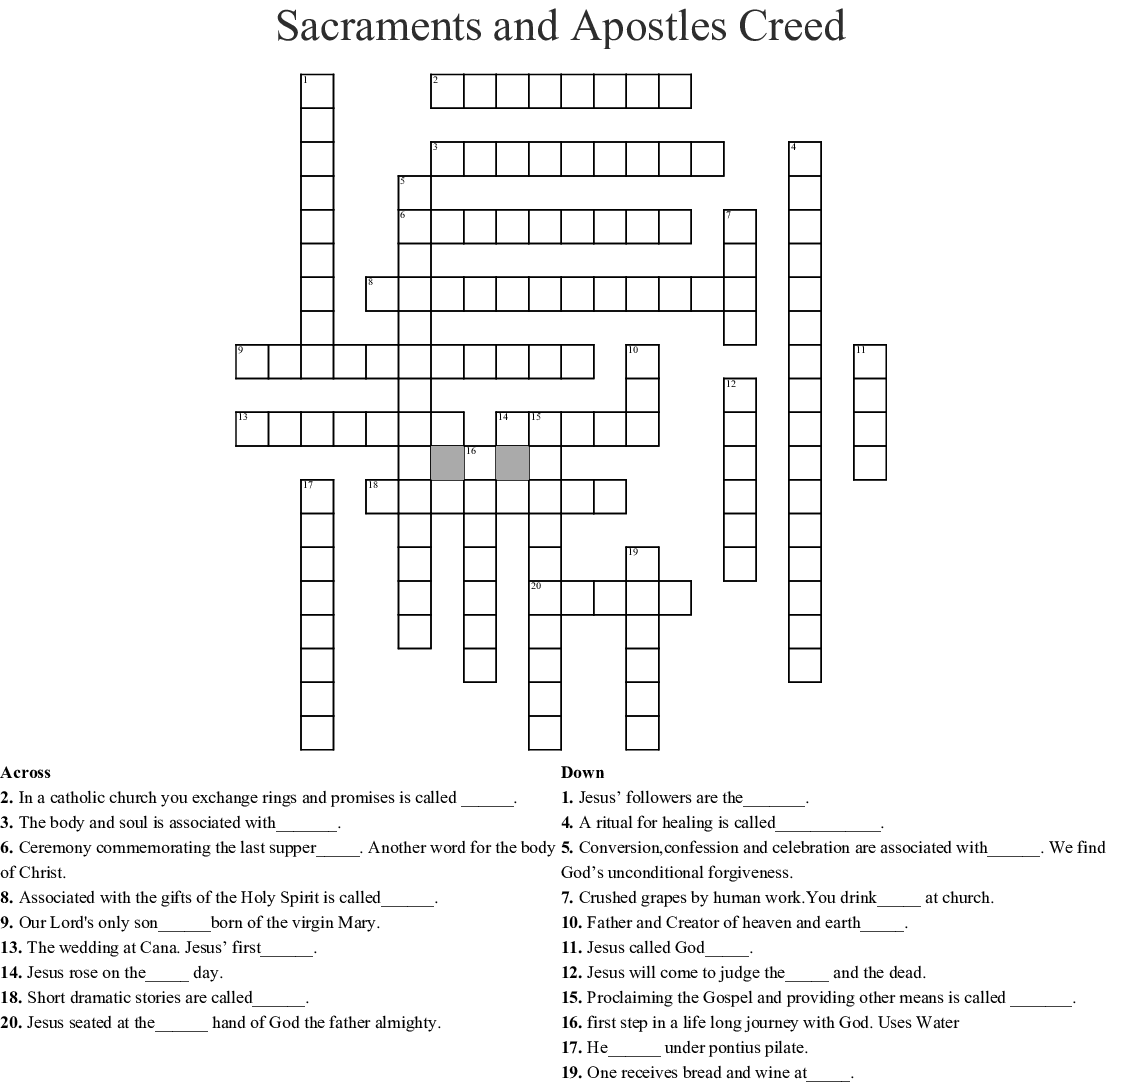 Apostles Creed Scripture Search Worksheet